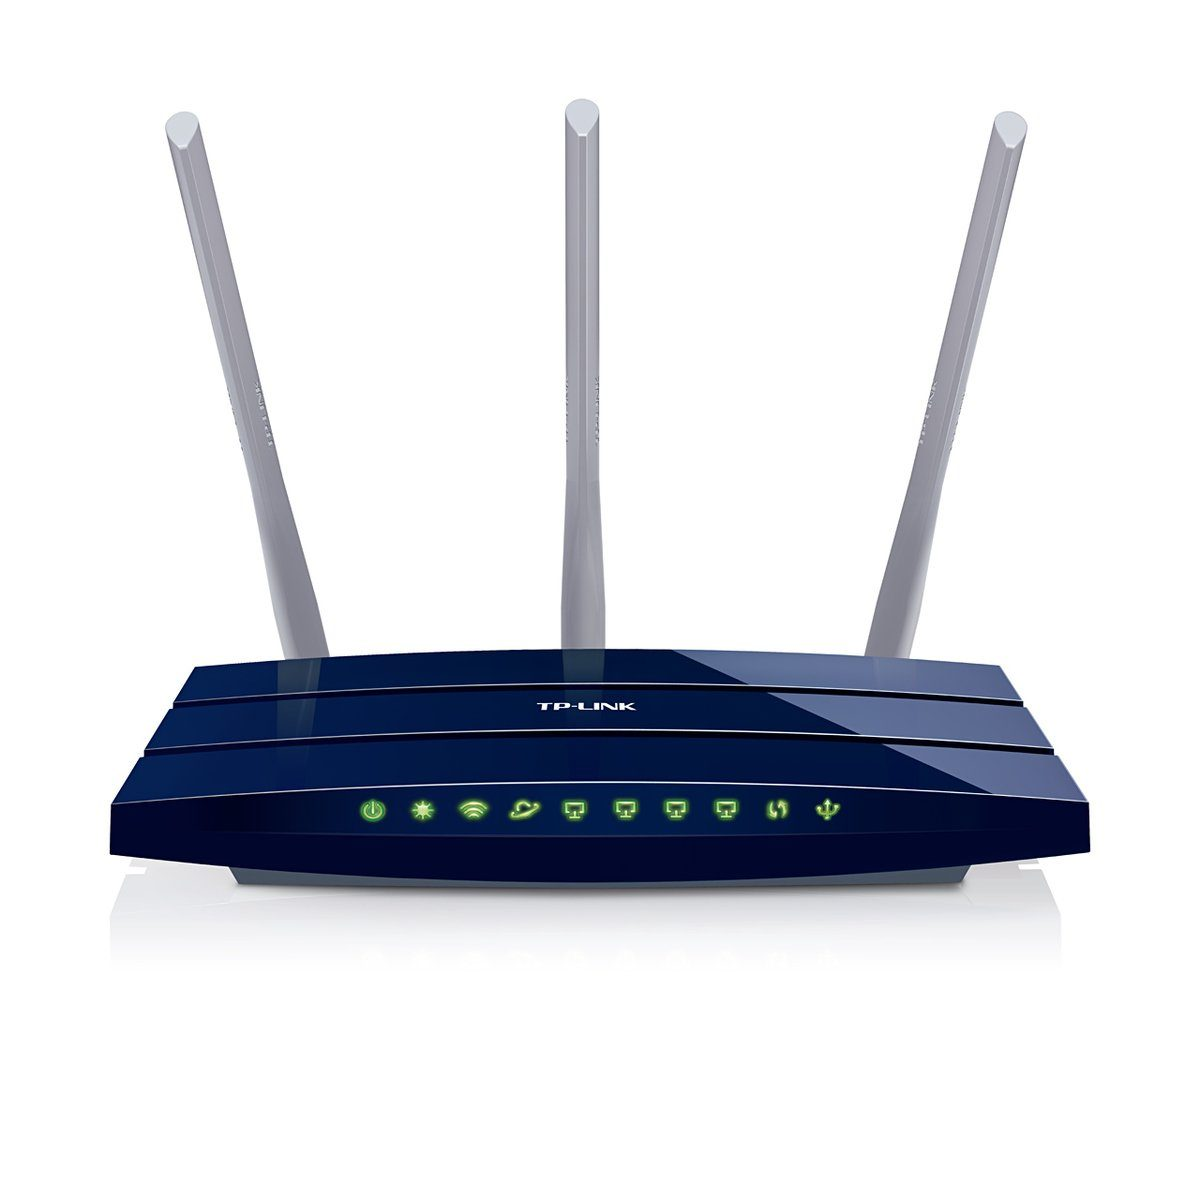 TP-Link Router »TL-WR1043ND N450 Gigabit WLAN N Router«